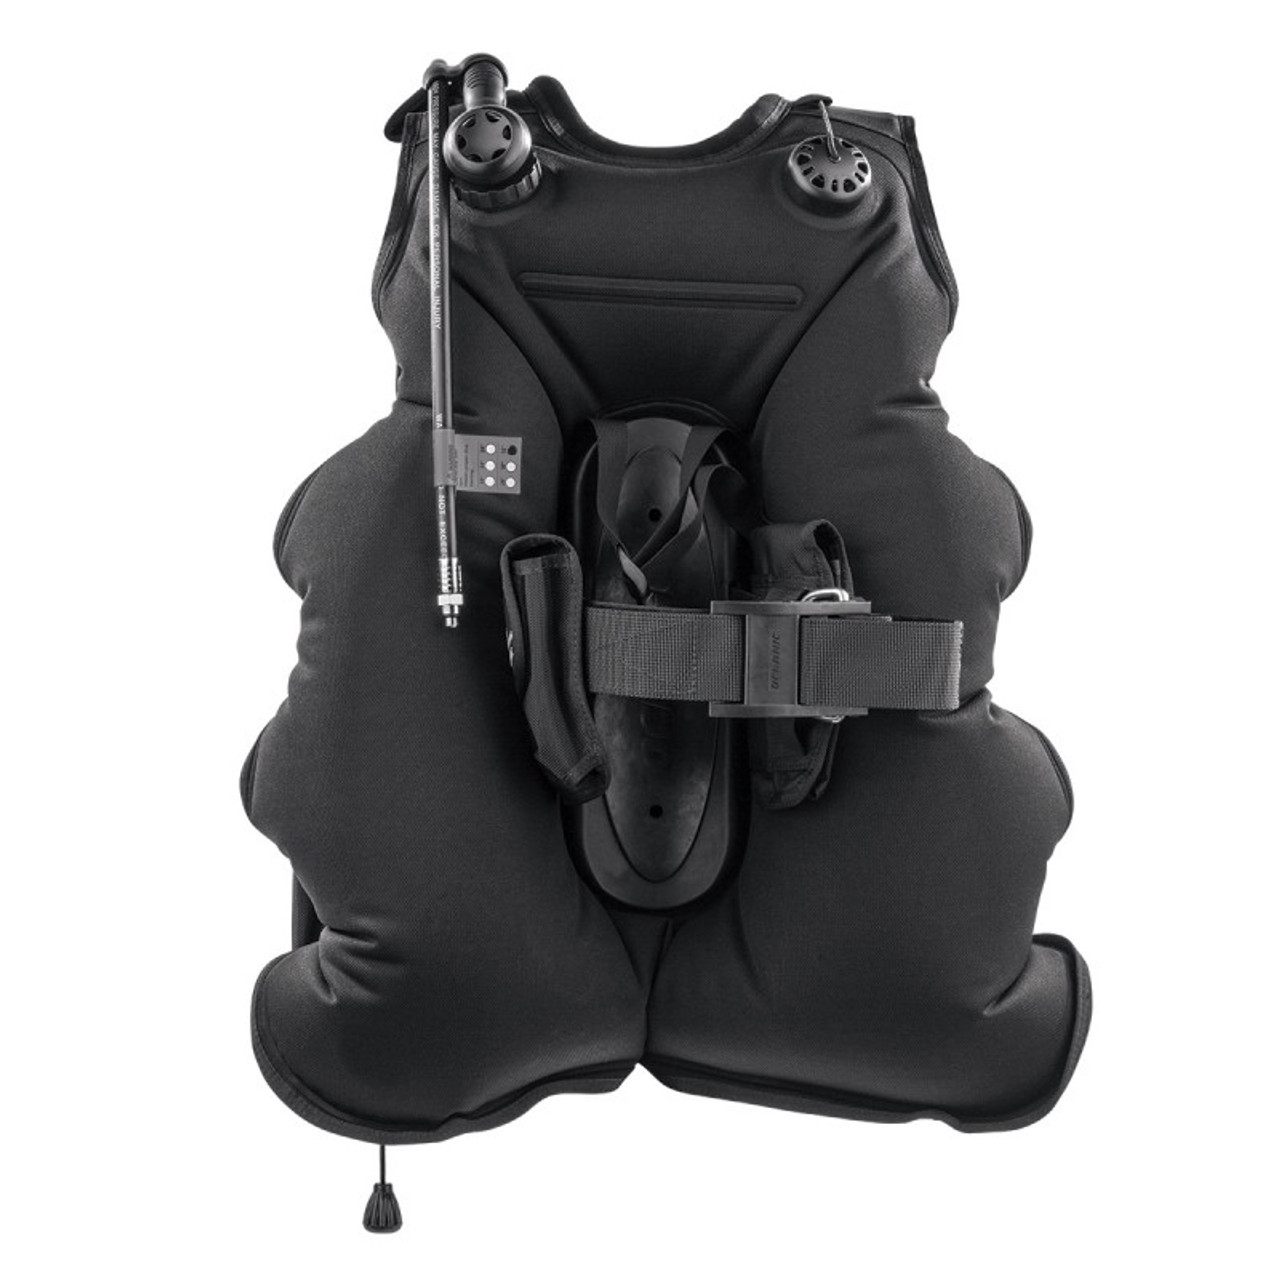 Oceanic Excursion QLR4 Buoyancy Compensator BCD